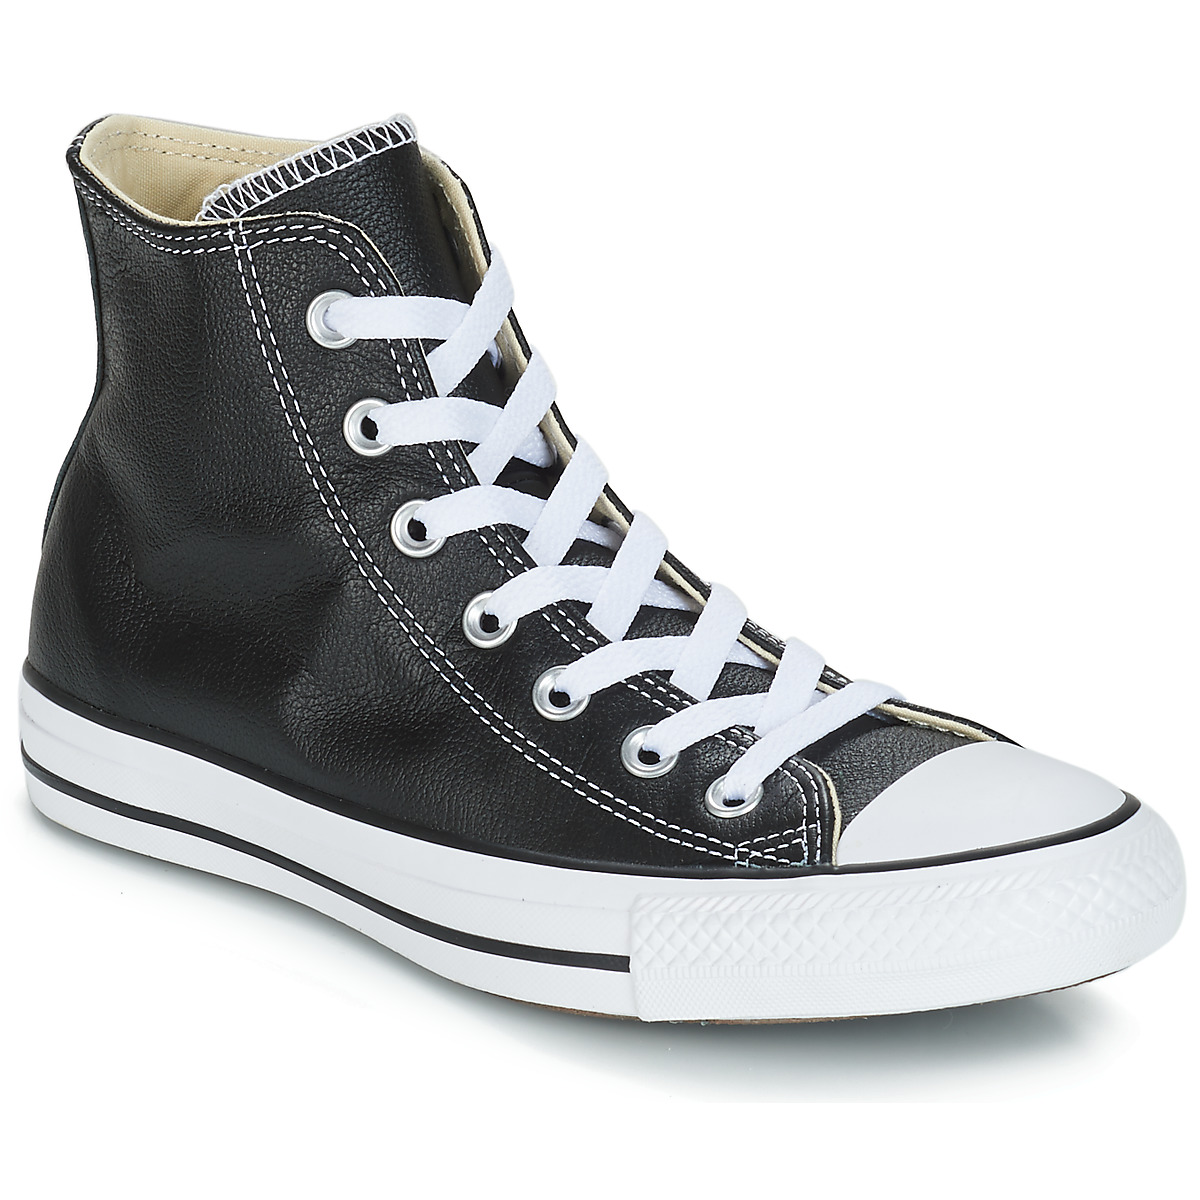 Converse Chuck Taylor All Star CORE LEATHER HI Sort